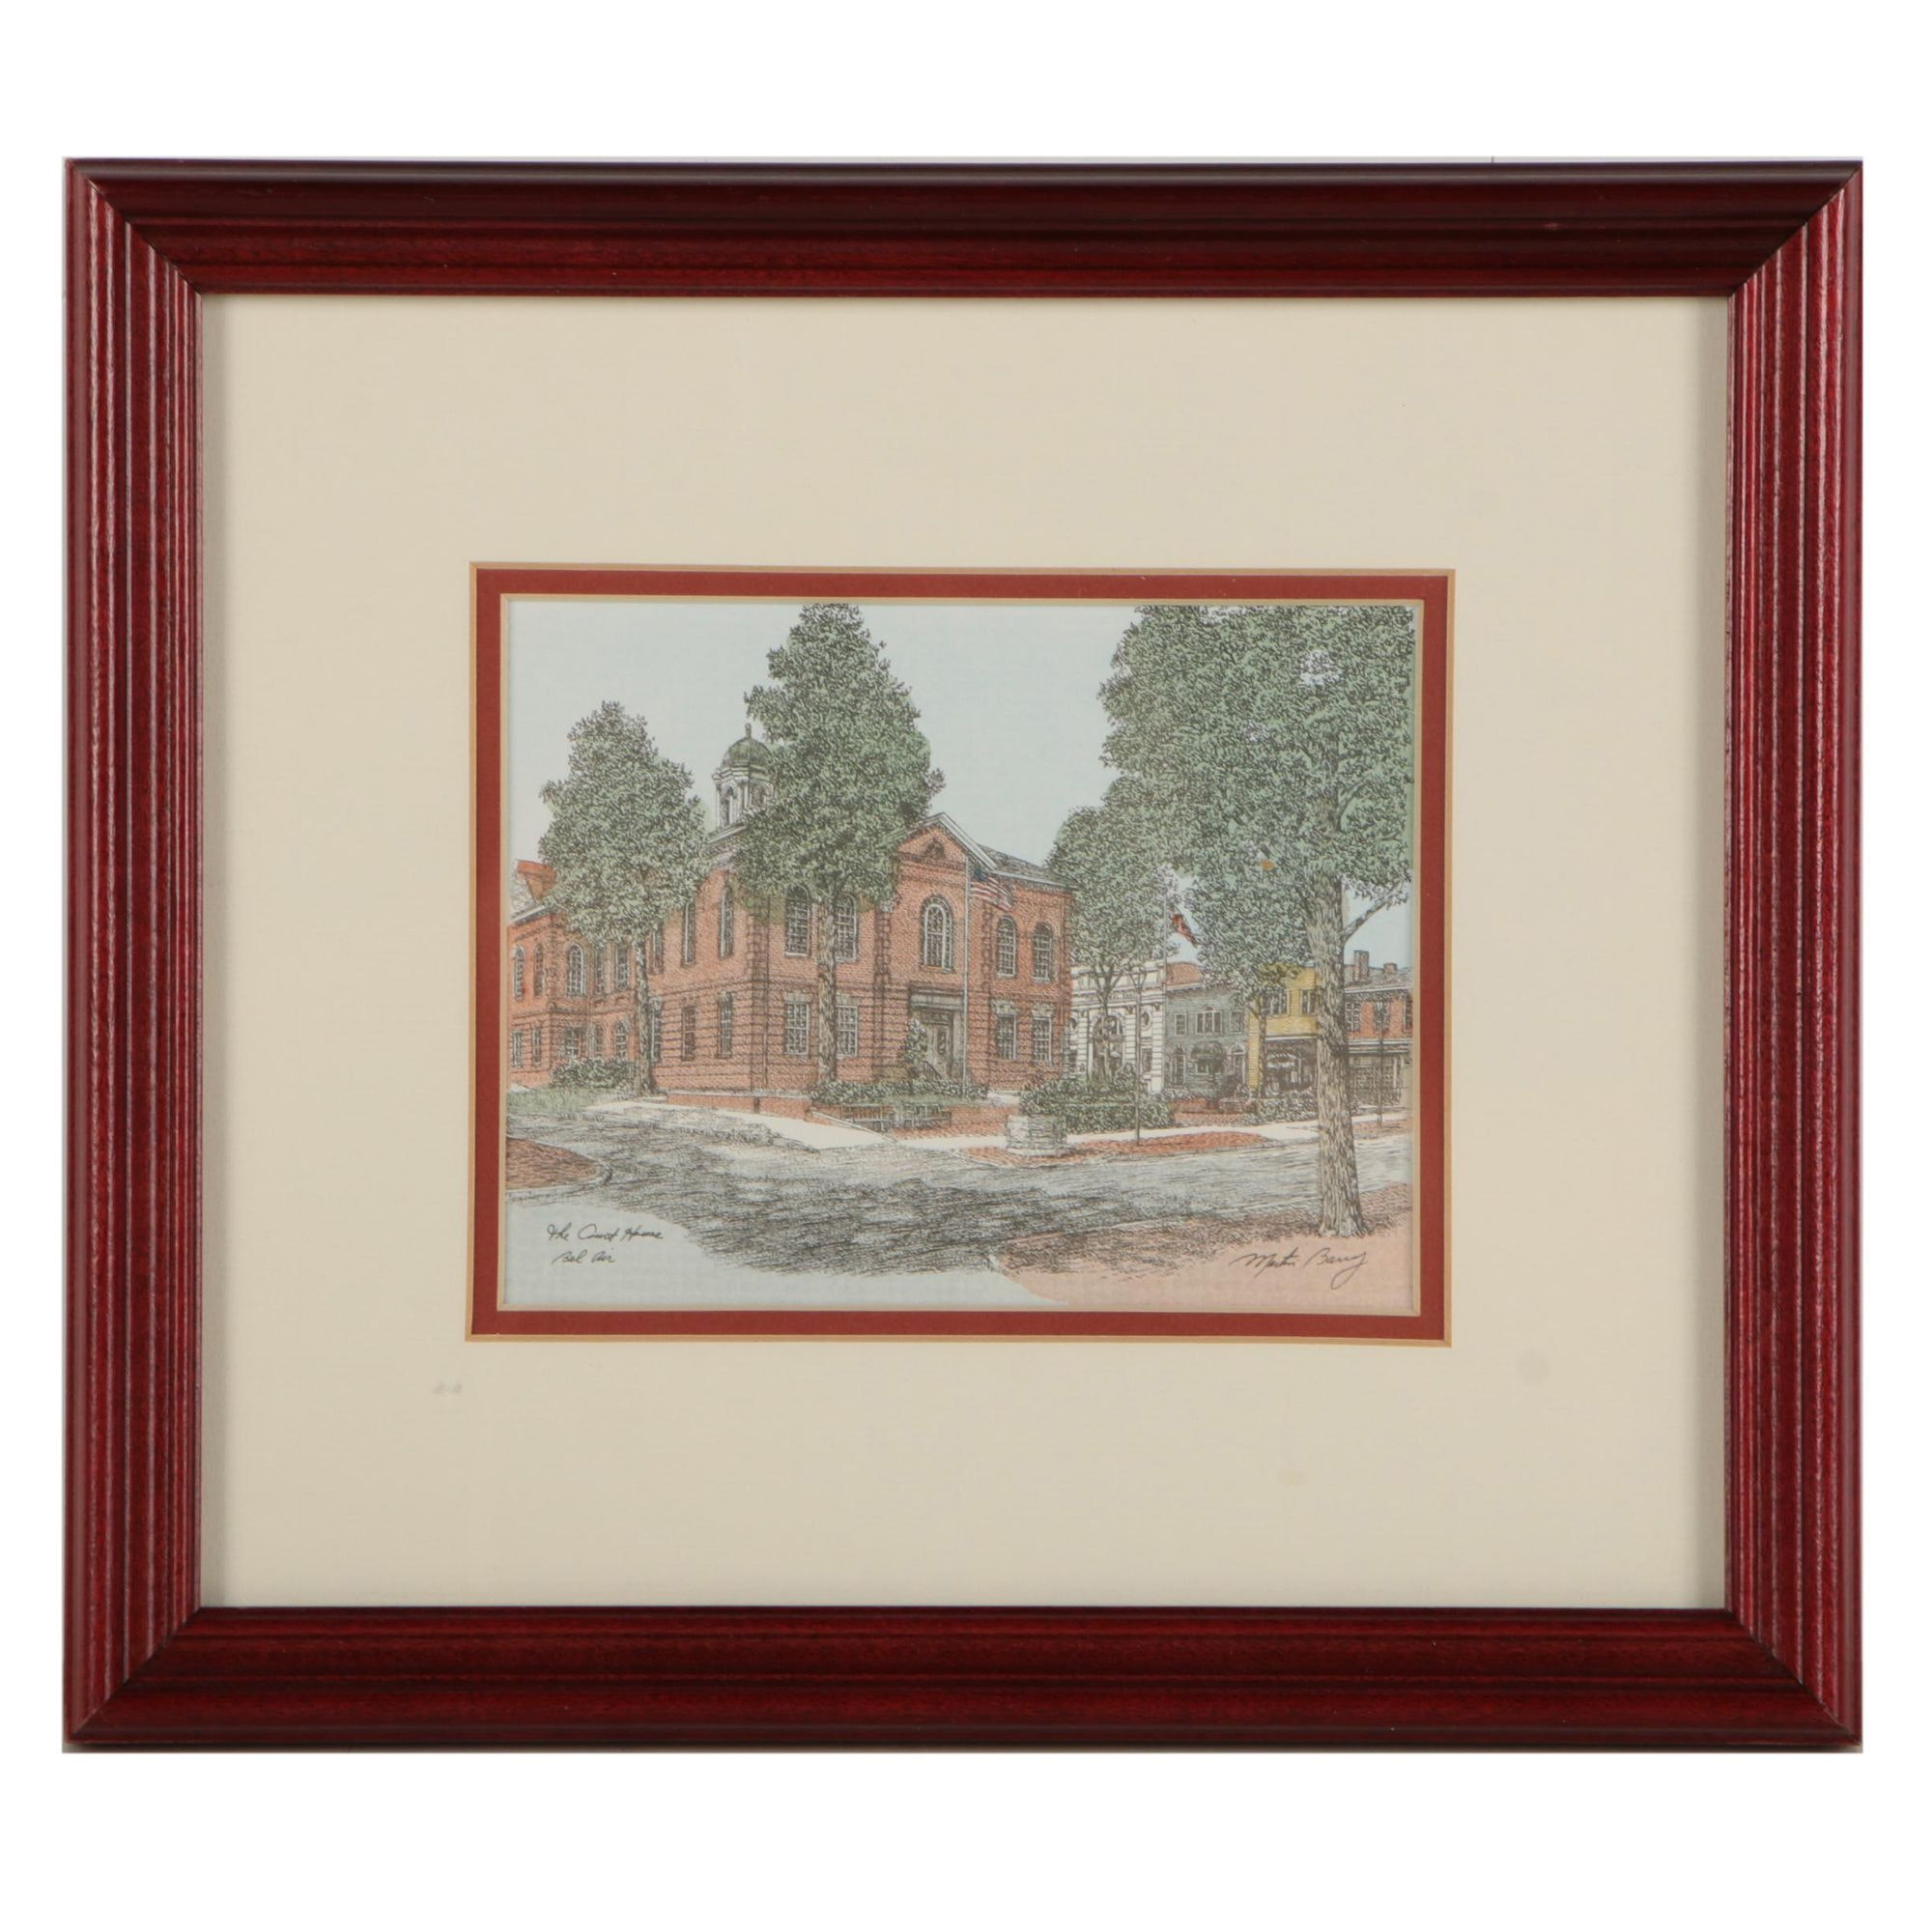 """Martin Barry Hand Colored Lithograph """"The Court House - Bel Air"""""""